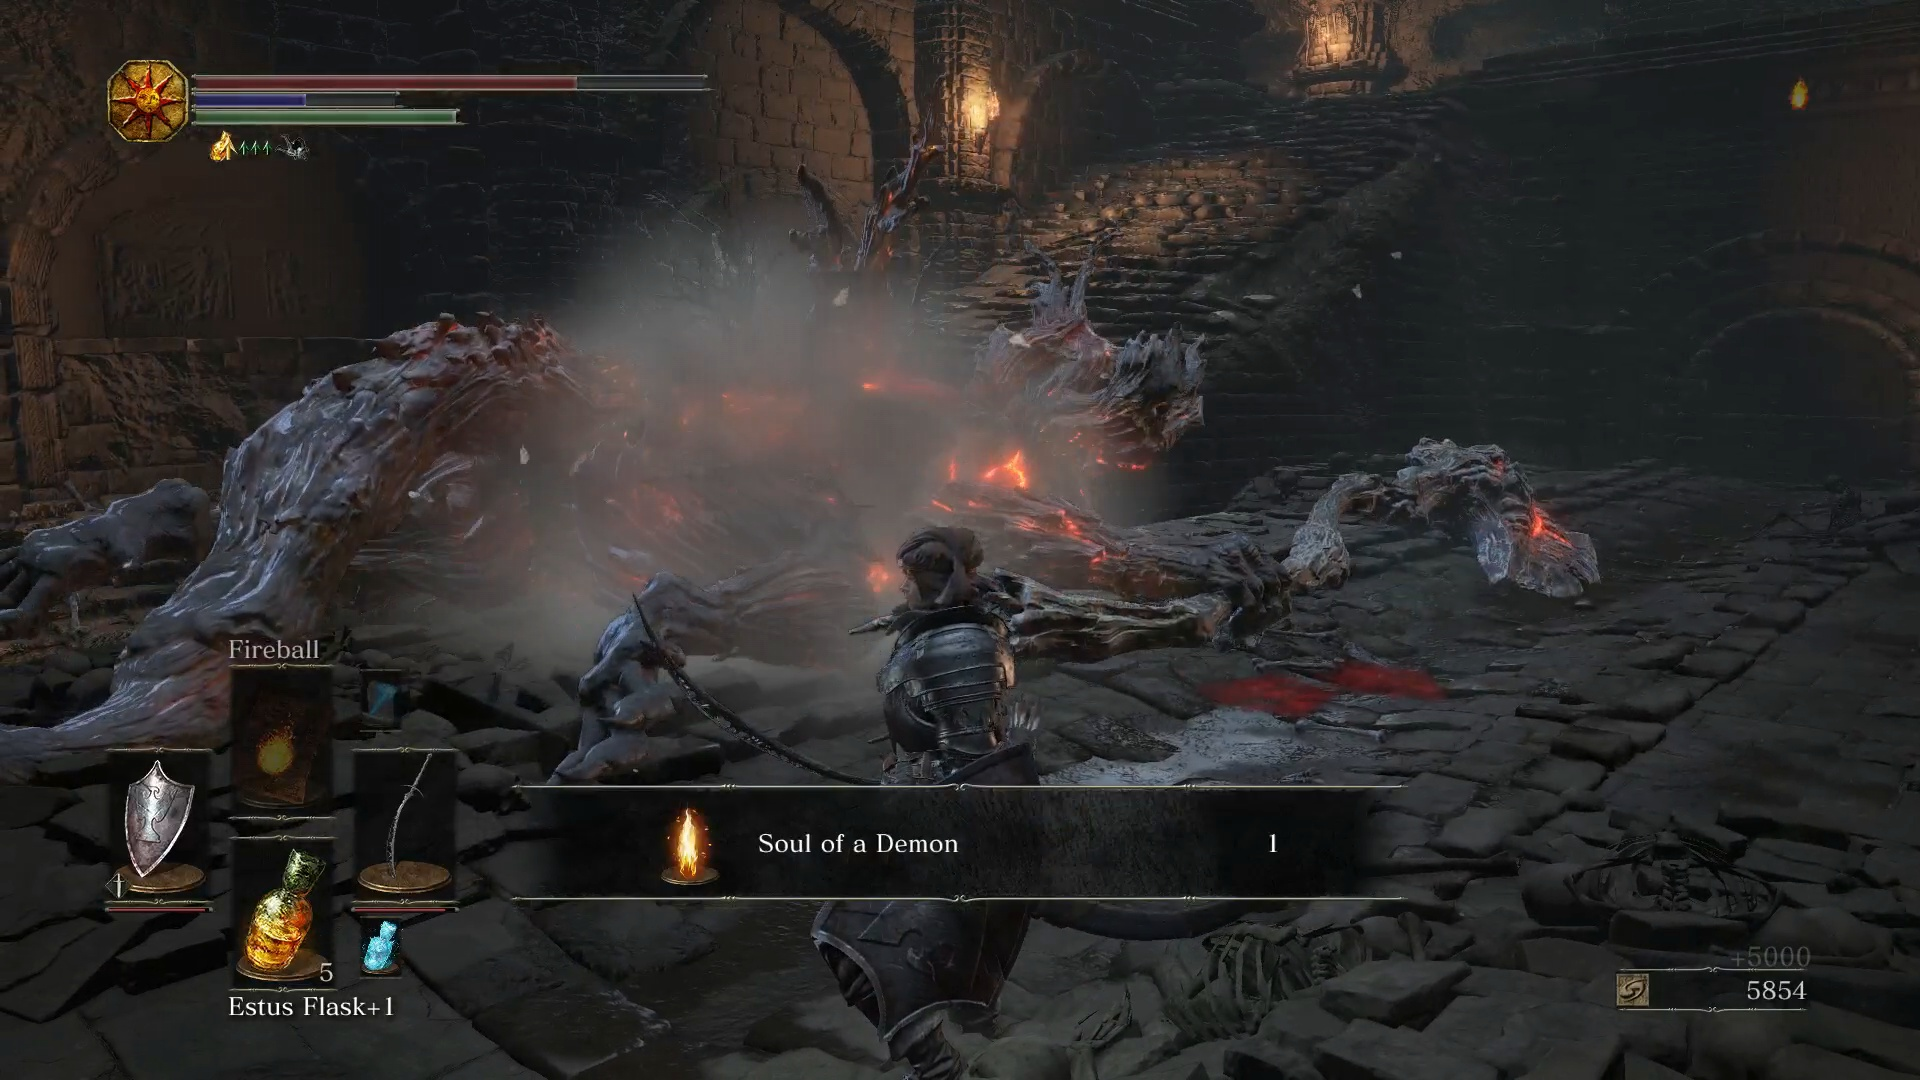 Dark Souls 3: Catacombs of Carthus - Defeat the Fire Demon | USgamer